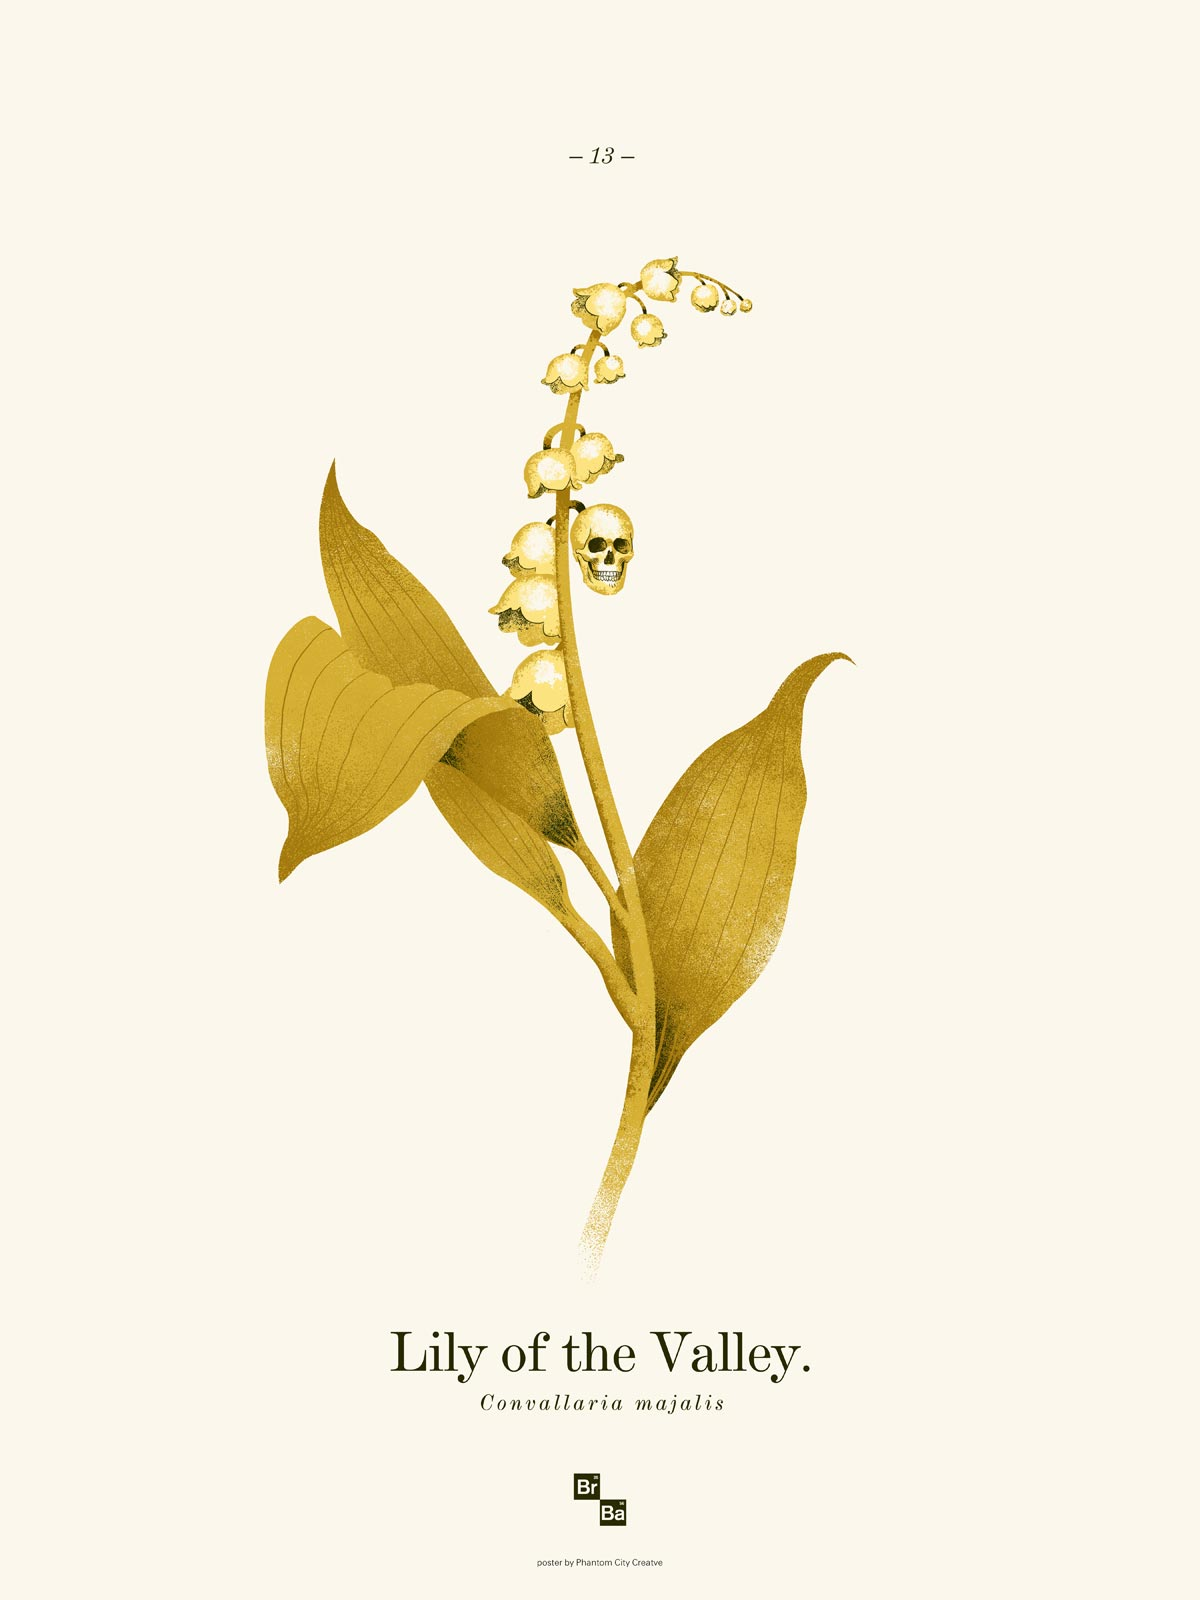 Lily of the Valley / Phantom City Creative